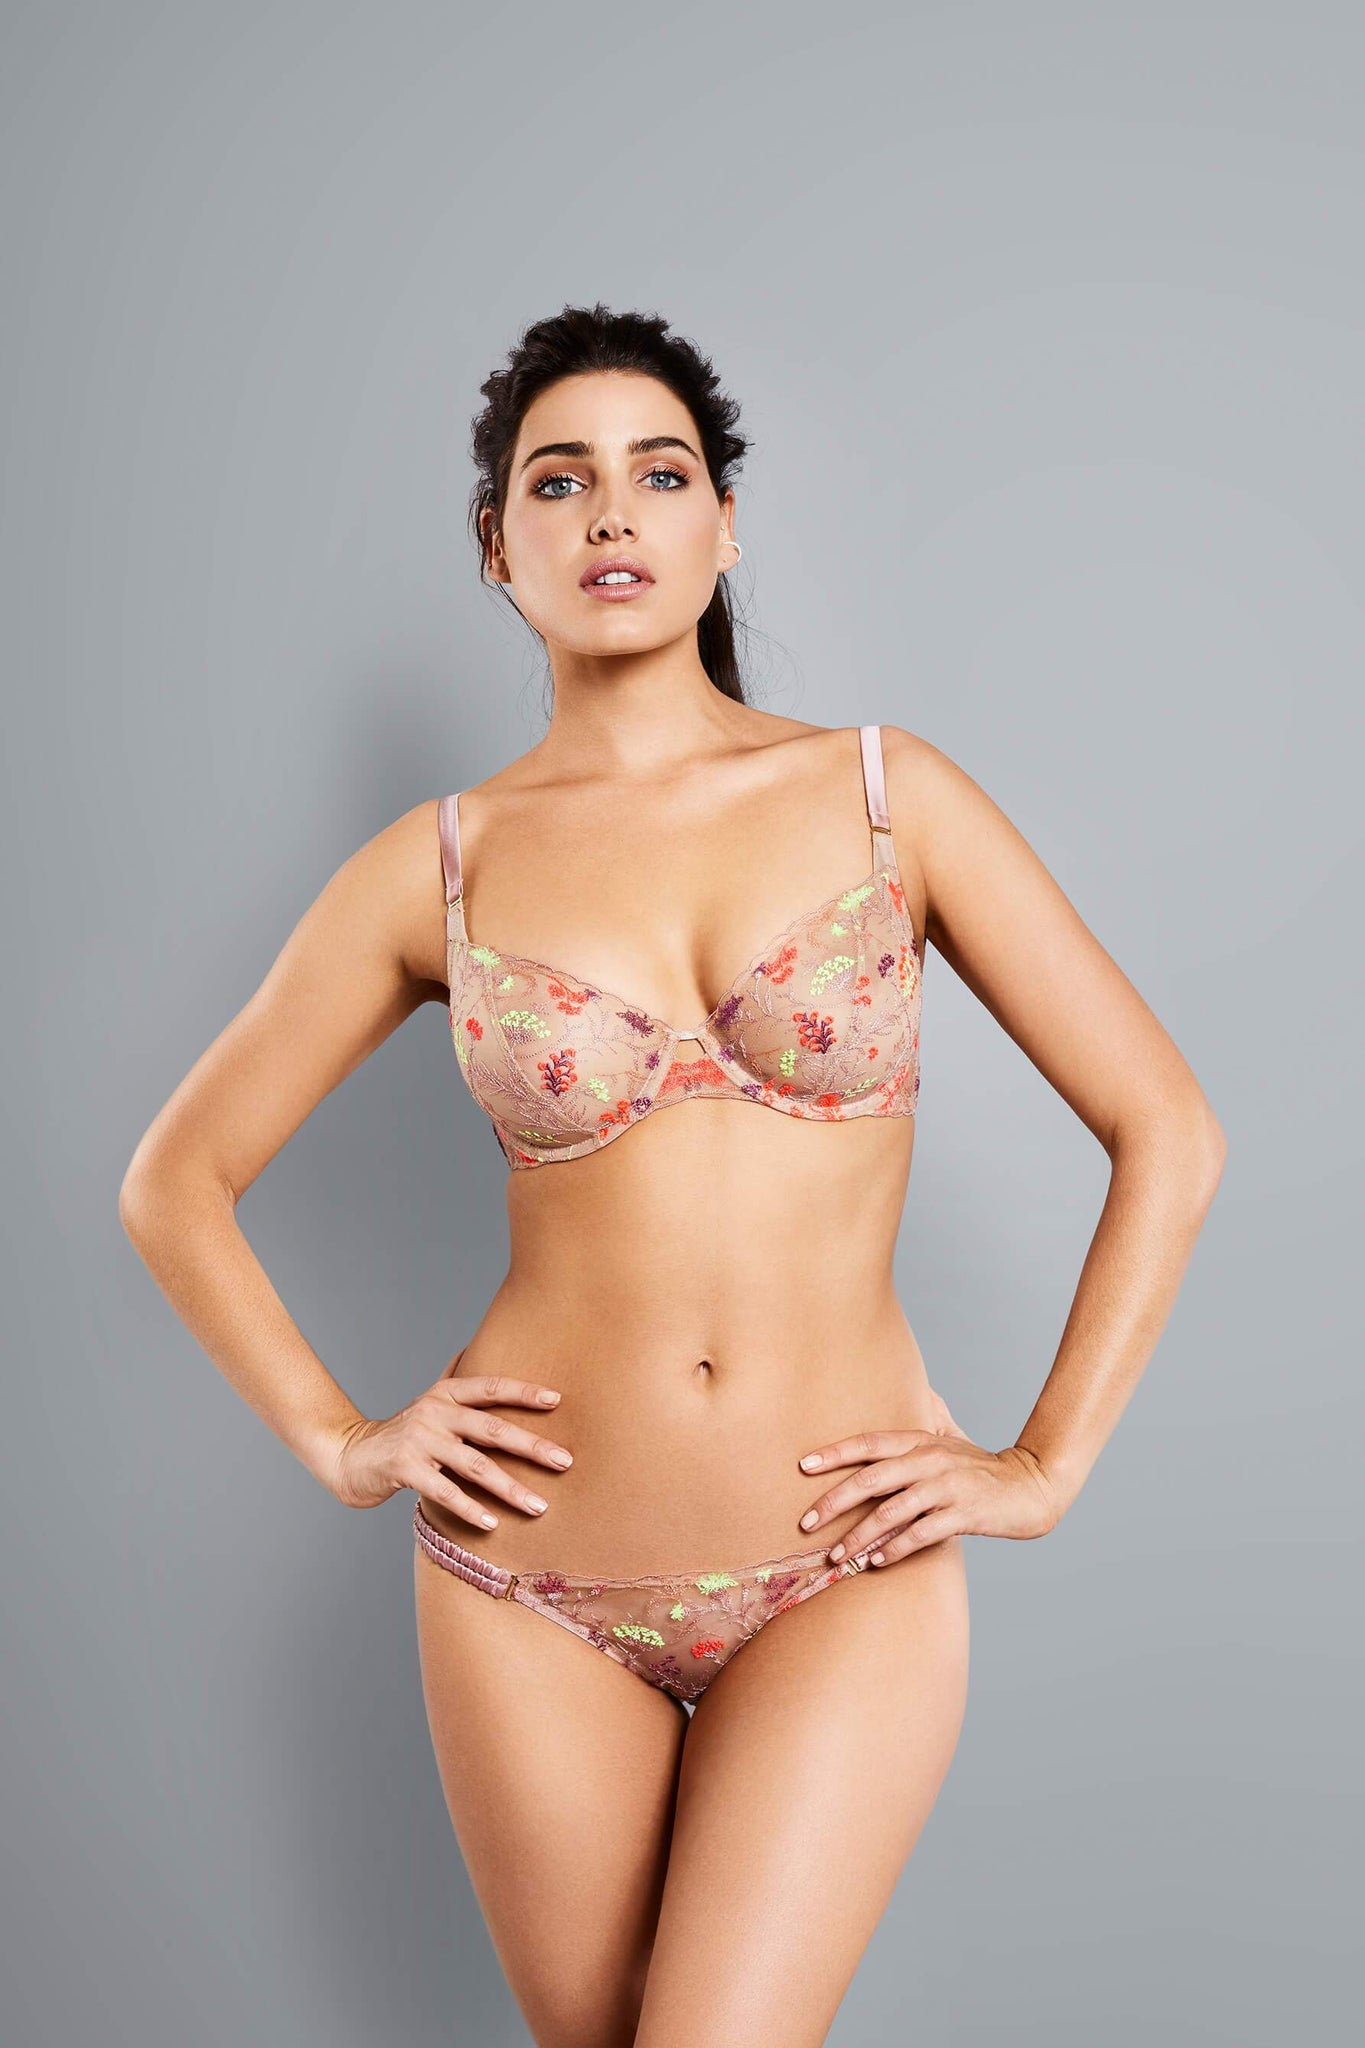 2ce7493bbdd7b Neon Hit. Neon Hit. Veronica Neon Embroidered Full Cup Underwire Bra from Adina  Reay